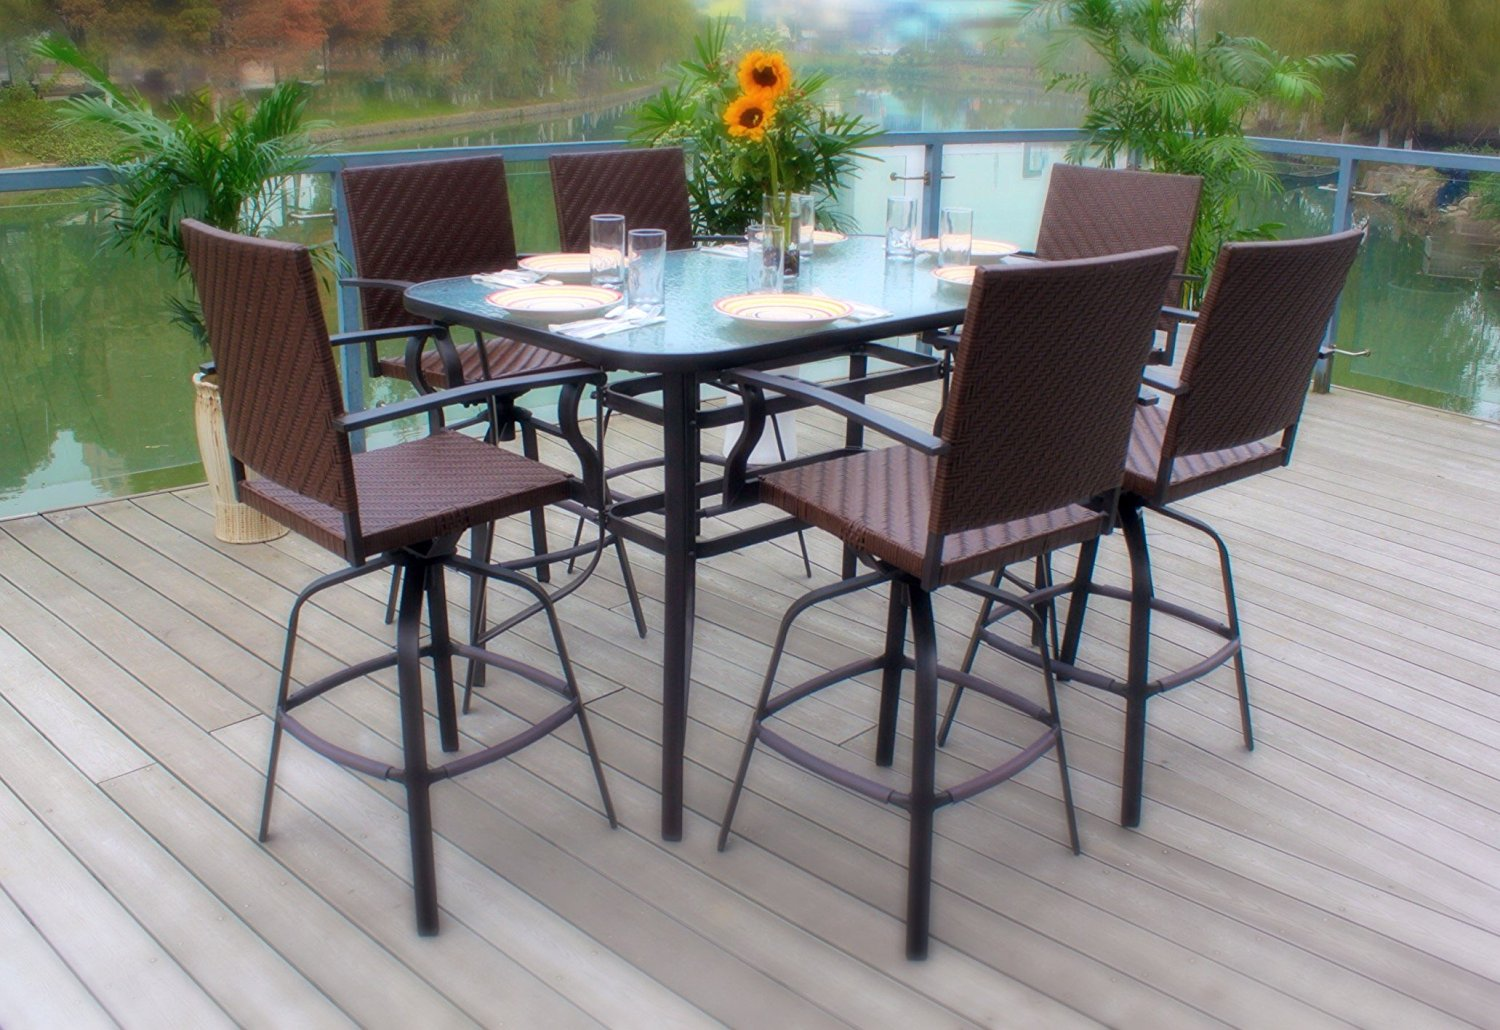 Lovely 7pc Wicker Swivel Bar Height Powder Coated Steel Glass Top Patio Dining Set   Brown